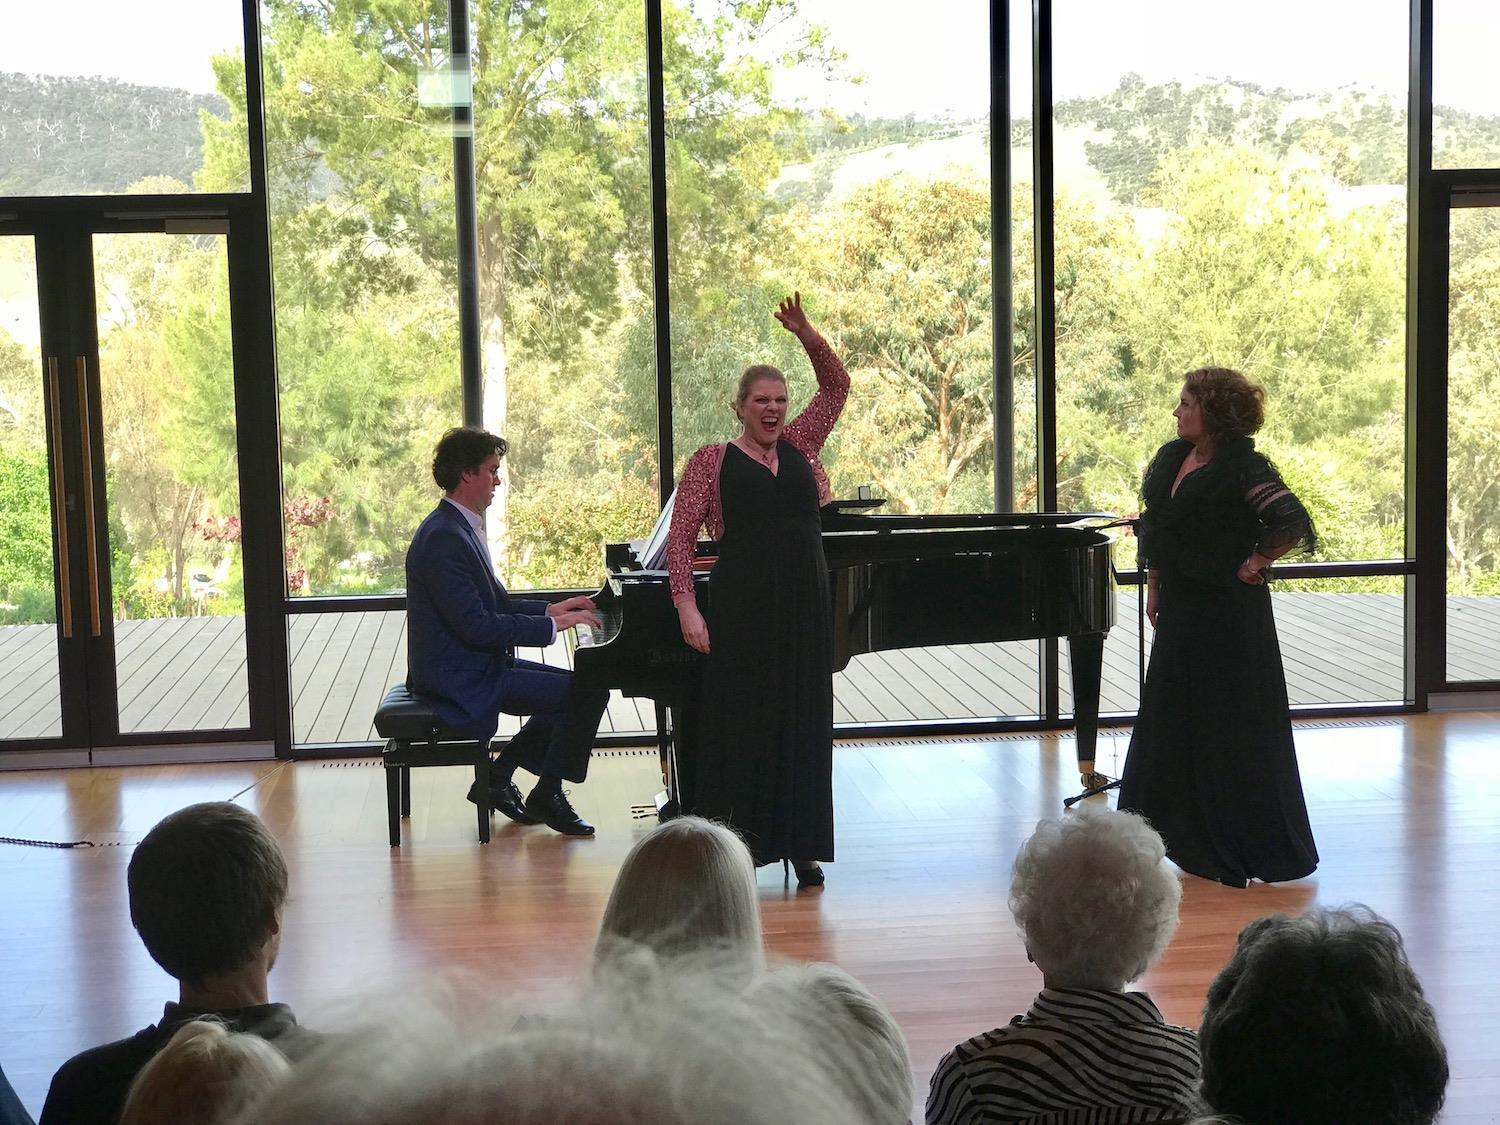 BWW Review: EMMA MATTHEWS, JACQUELINE DARK, AND TAHU MATHESON at Ukaria Cultural Centre